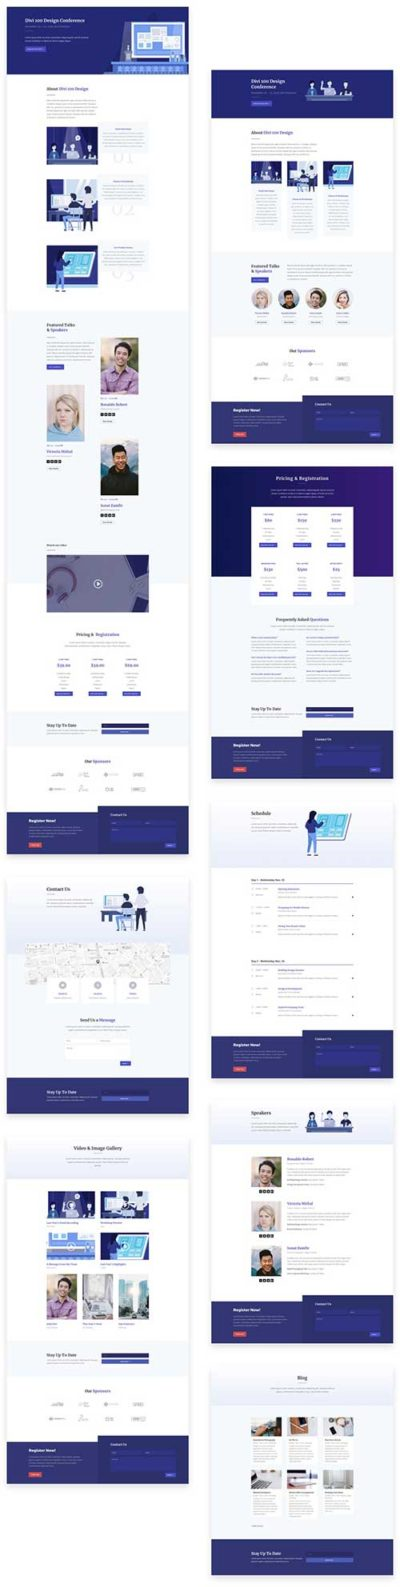 free divi layout for conference event